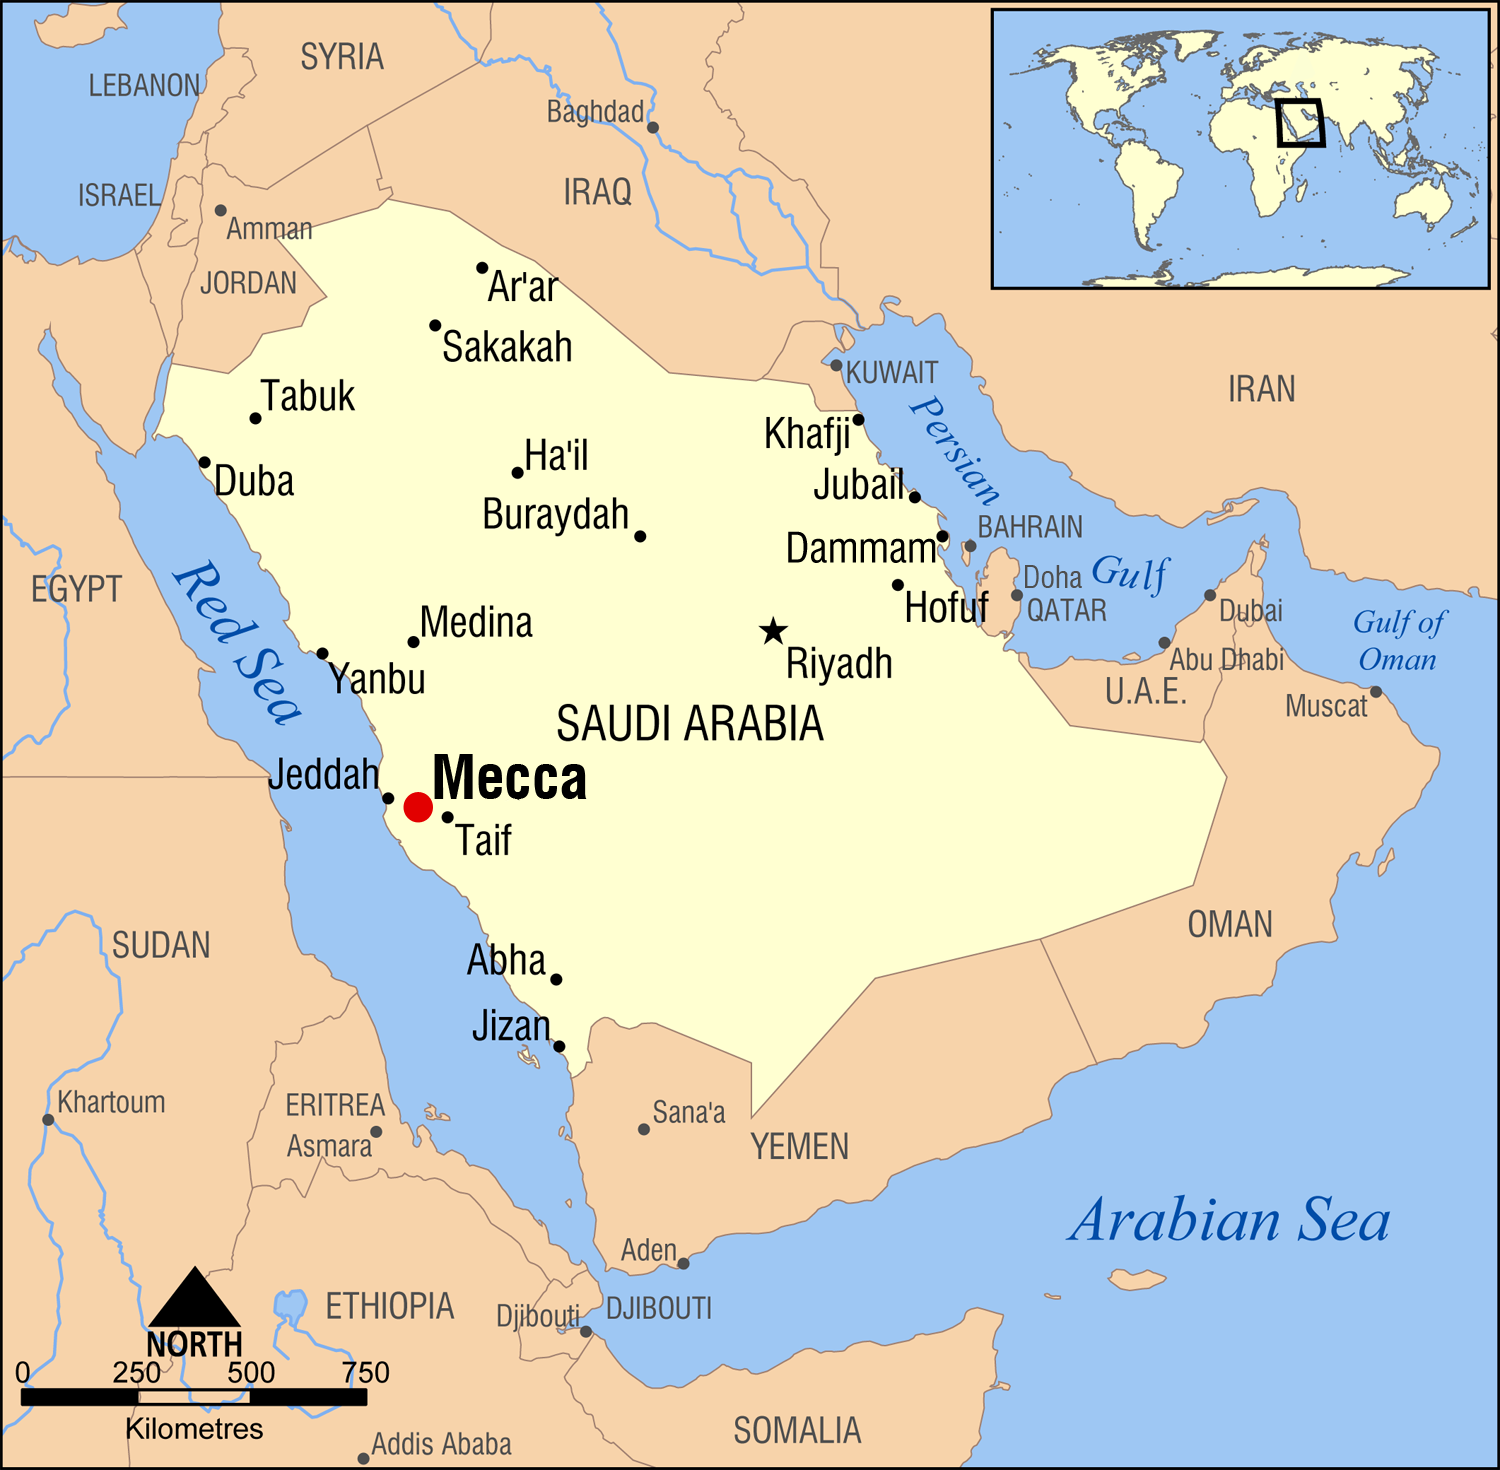 Mecca On Map File:Mecca, Saudi Arabia locator map.png   Wikimedia Commons